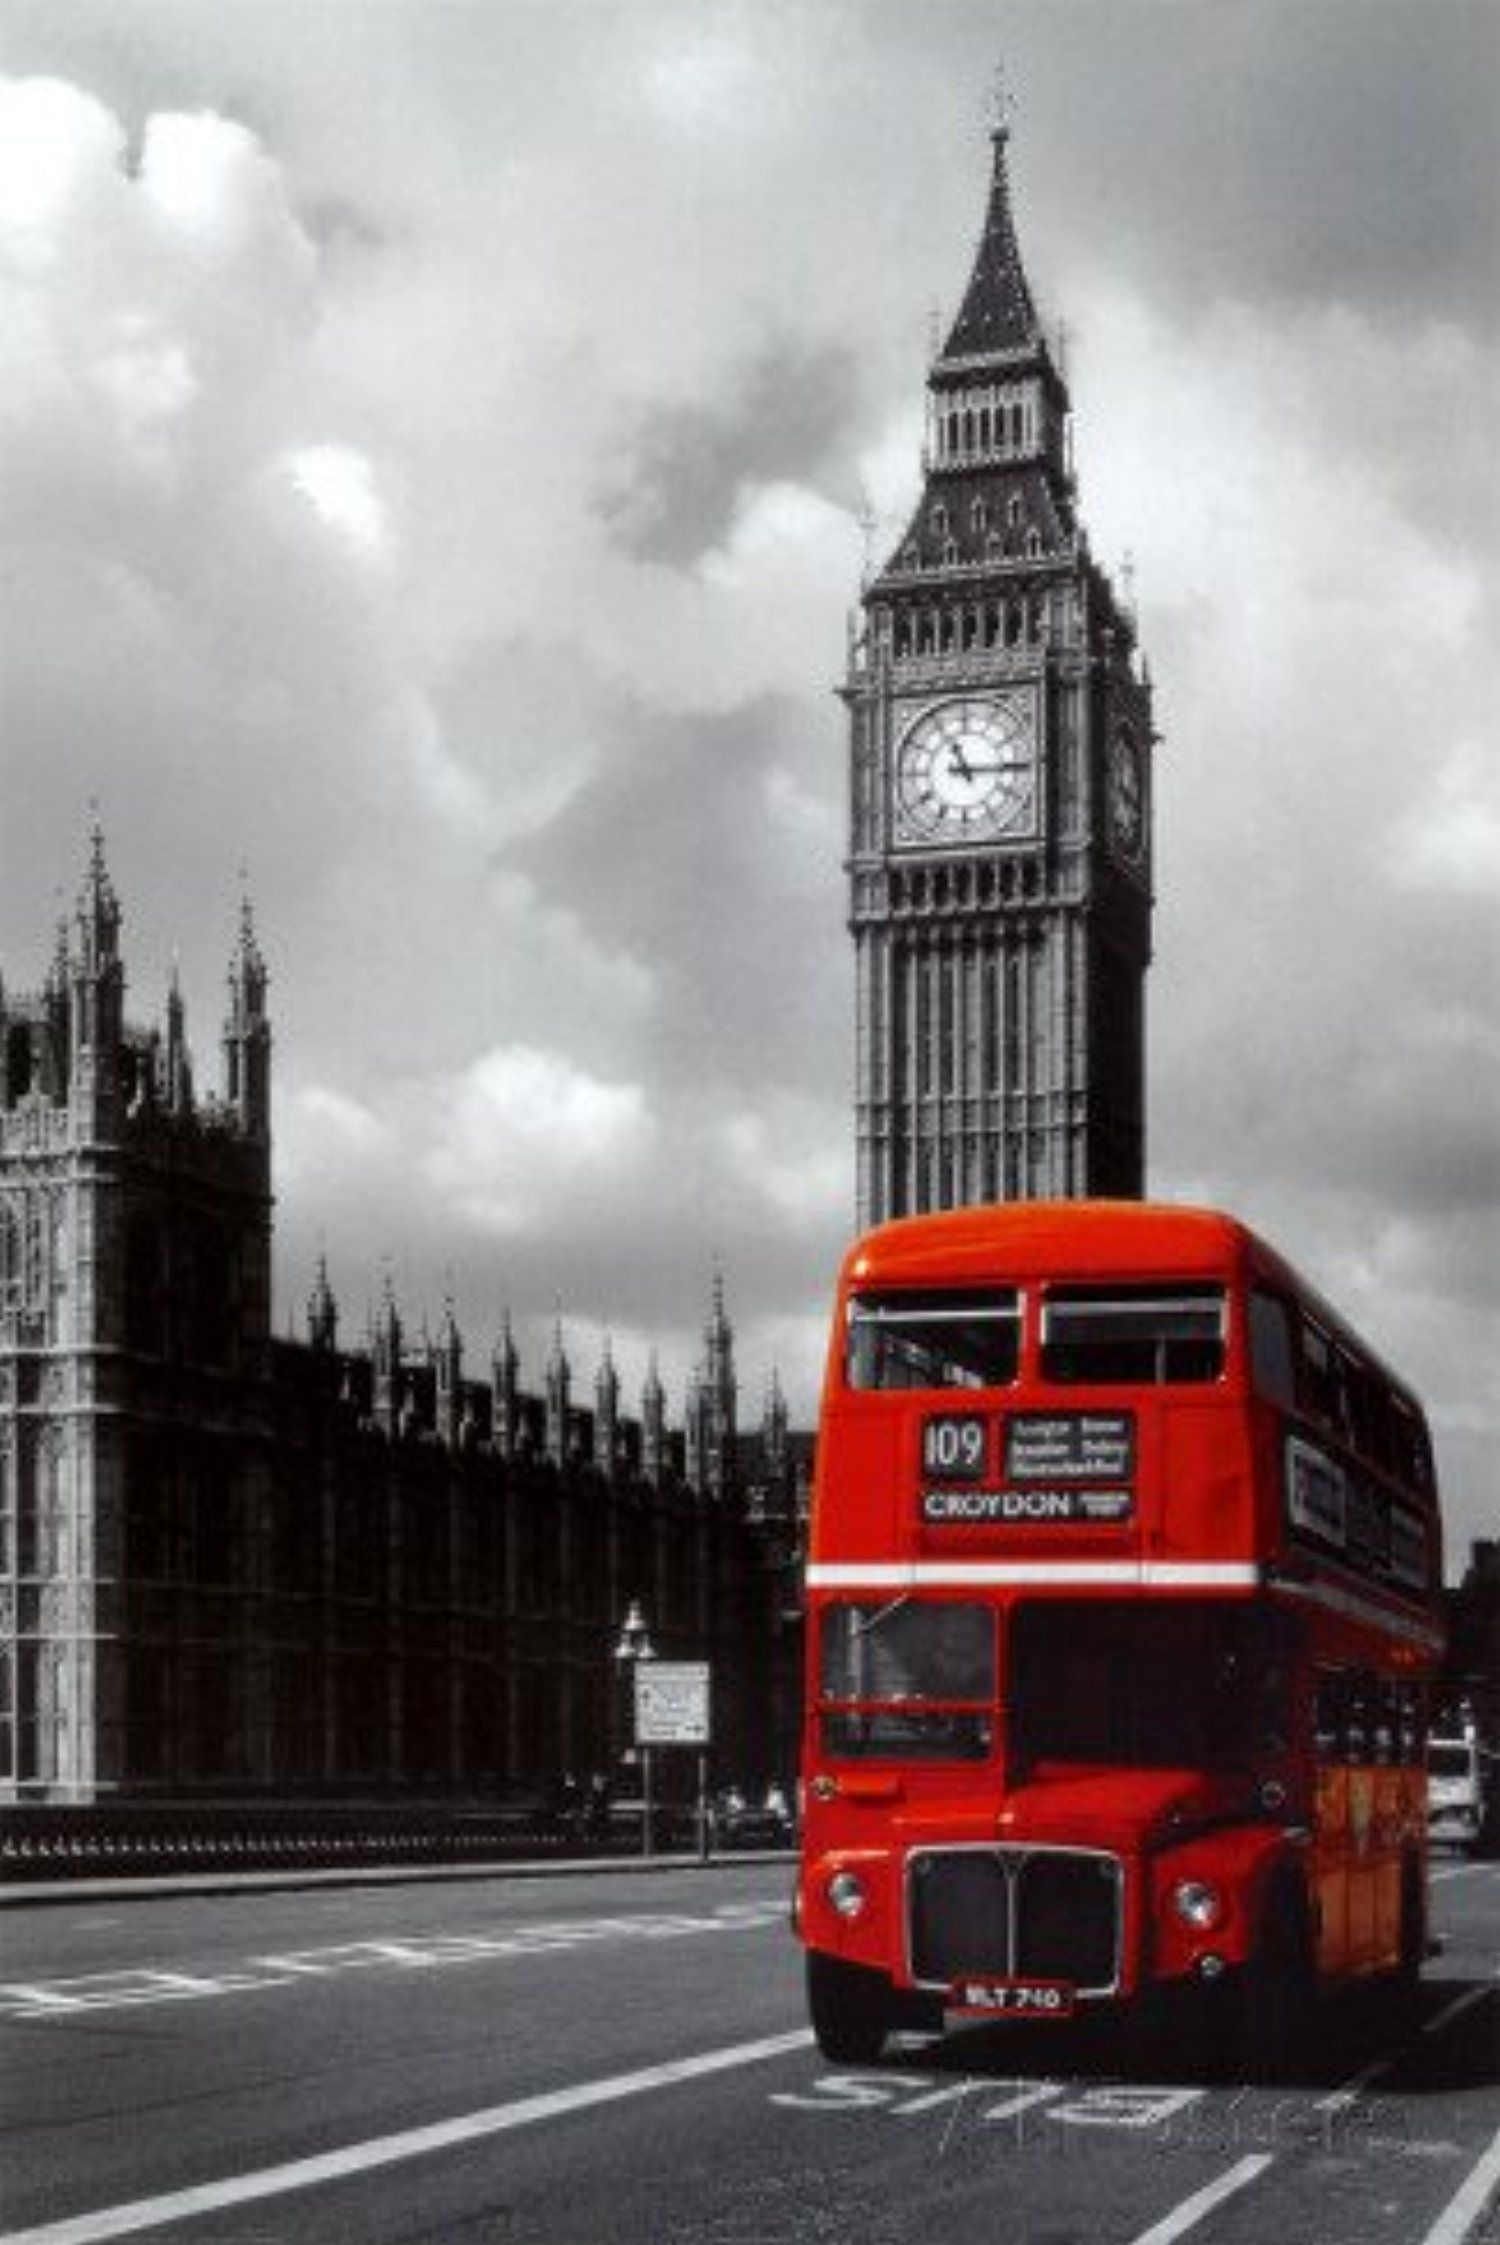 Poster design london - Decorative Posters Special Design London Red Bus Custom Home Decoration Photo Poster Prints 20 X 30